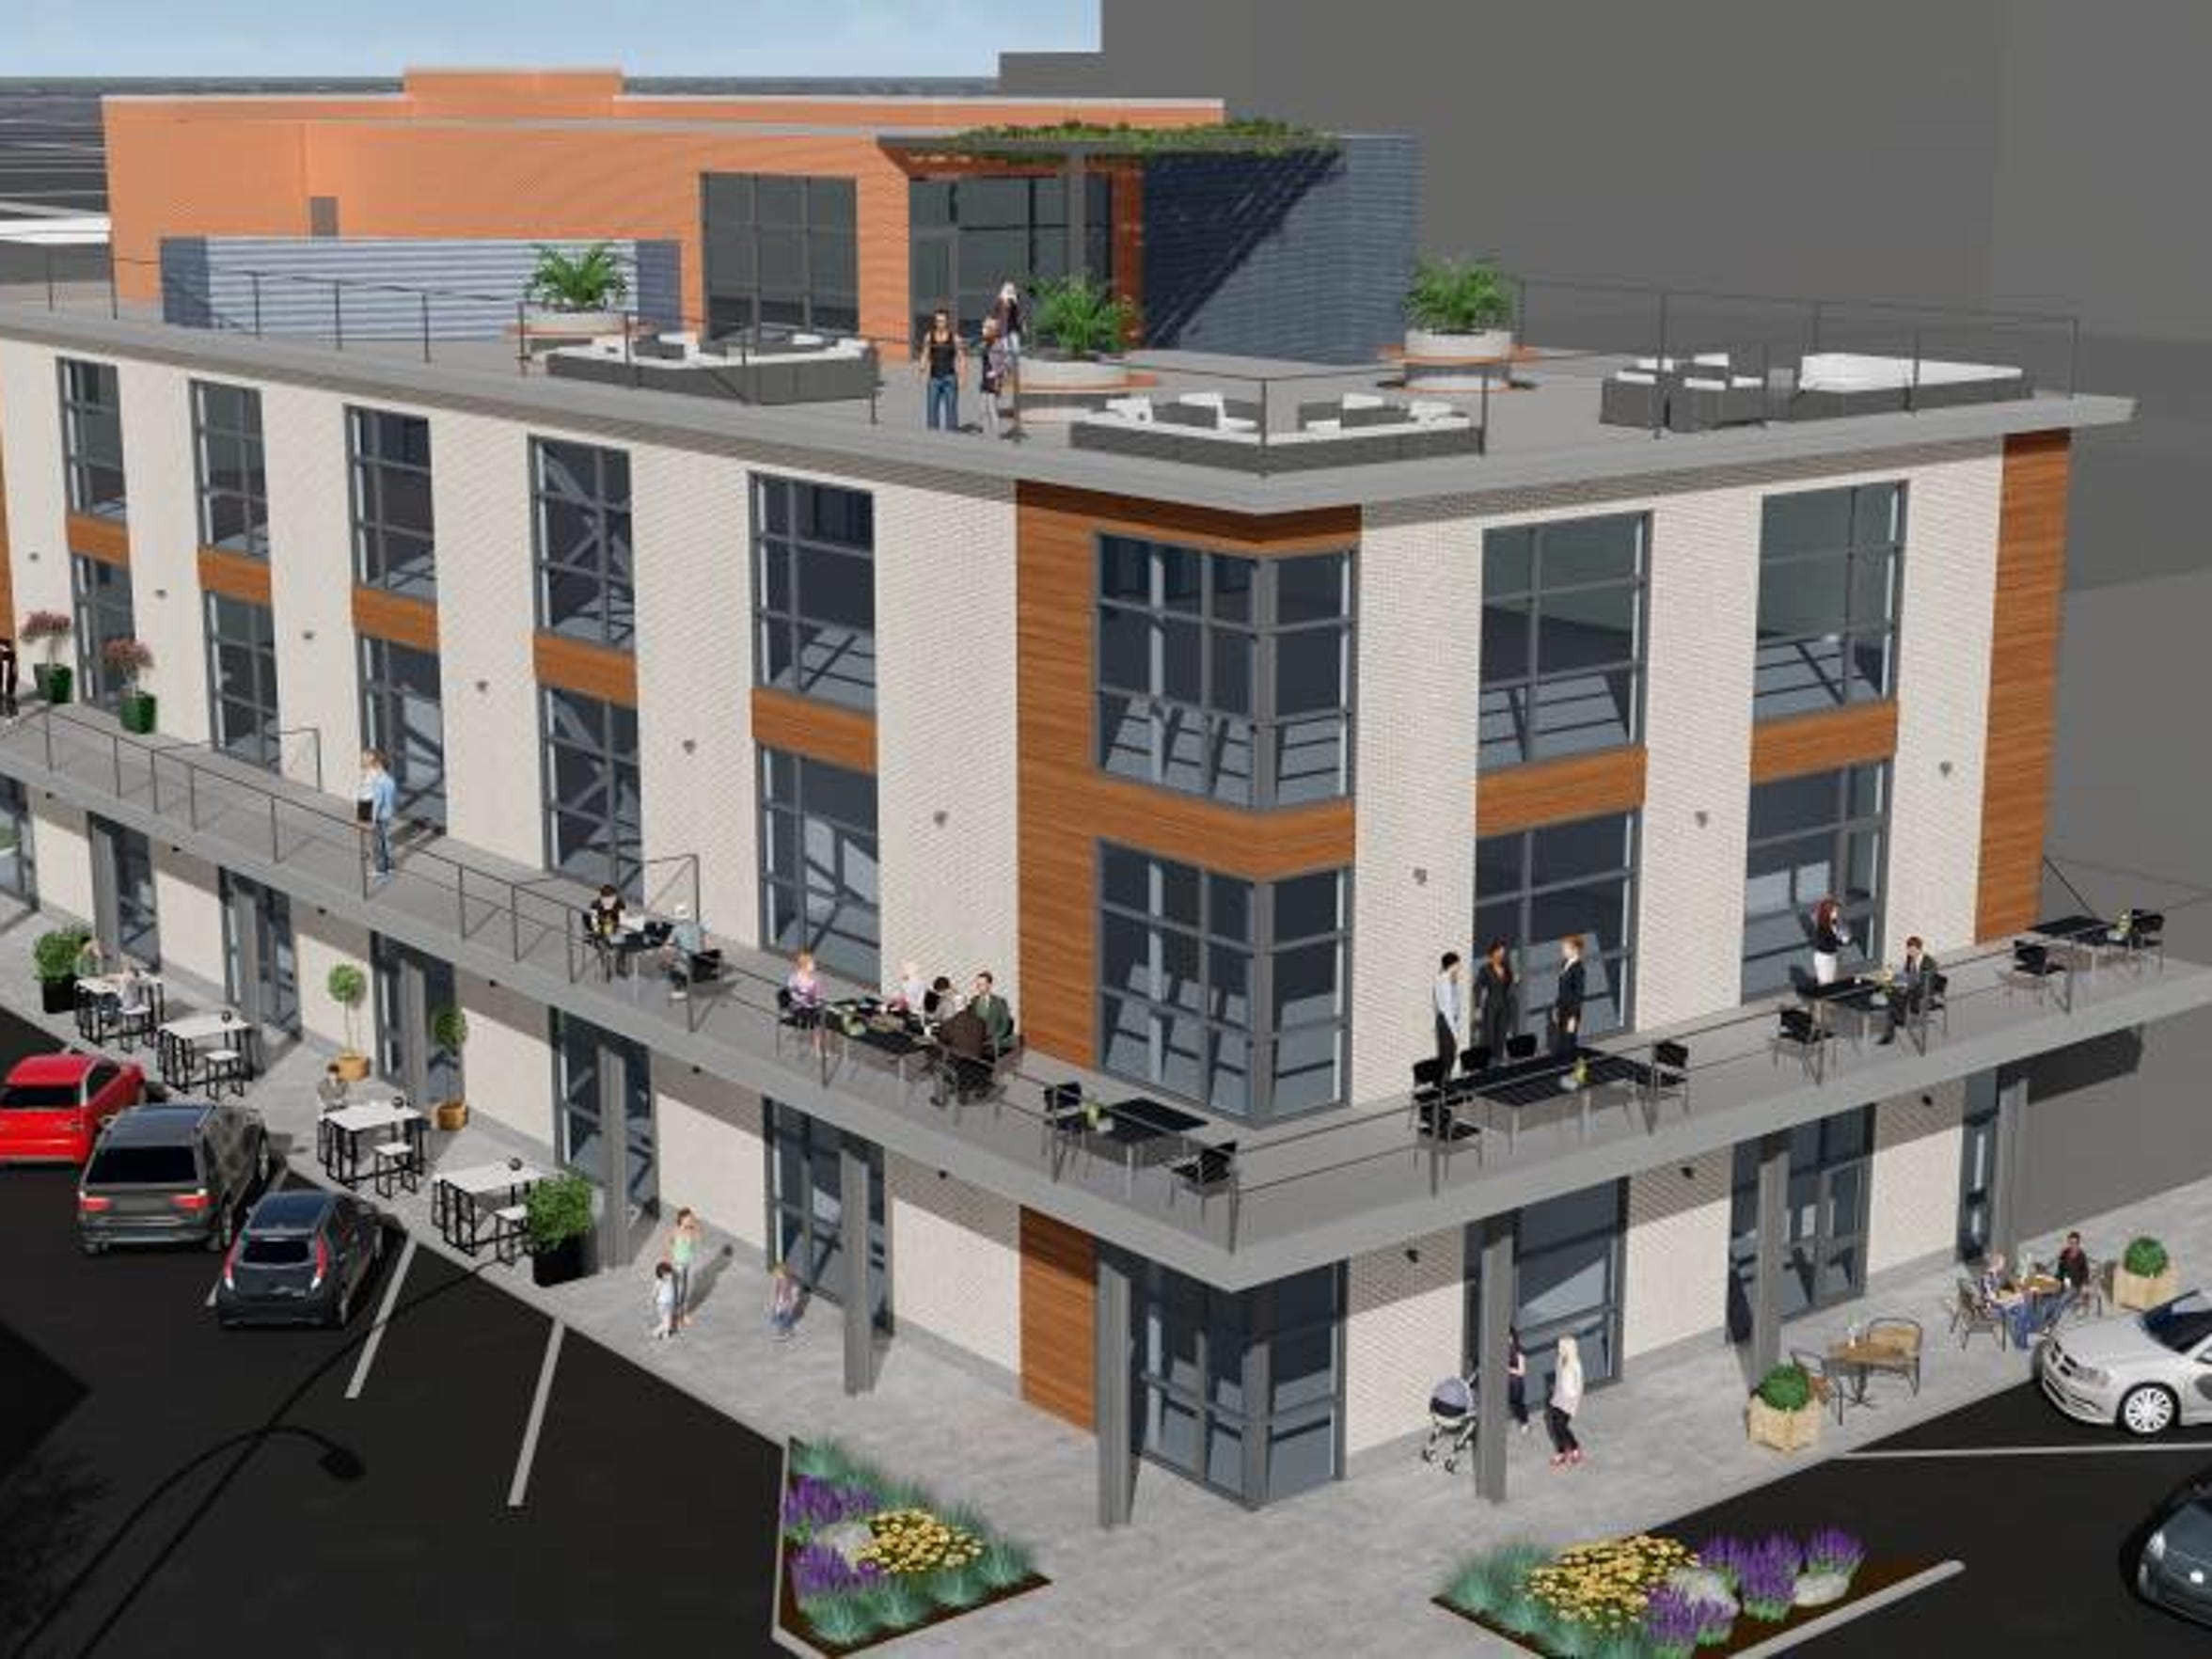 An artist rendering shows what Grain Theory Brewing Co. could look like when finished, including a proposed second deck, new windows and rooftop space for the building at 202 Pine St.